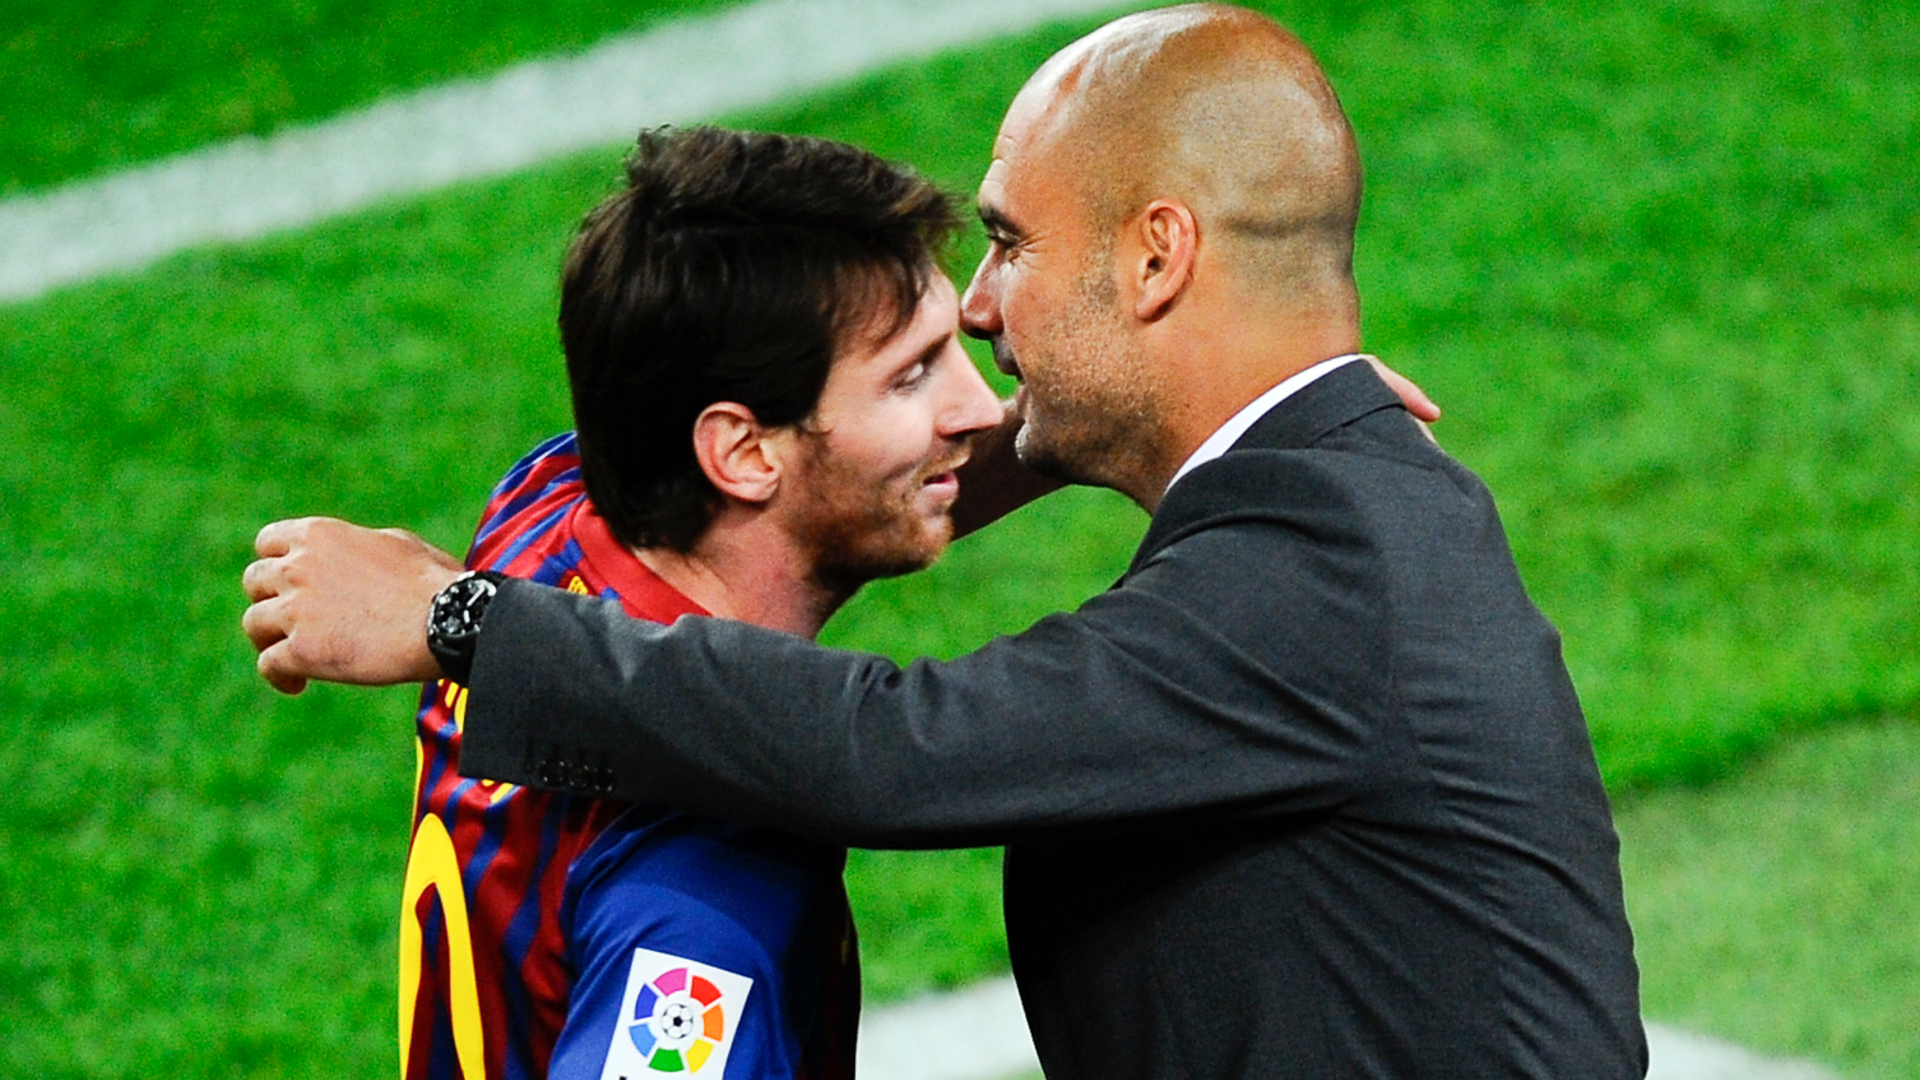 Man City are 'top candidates for' Messi, says Barca presidential hopeful Font